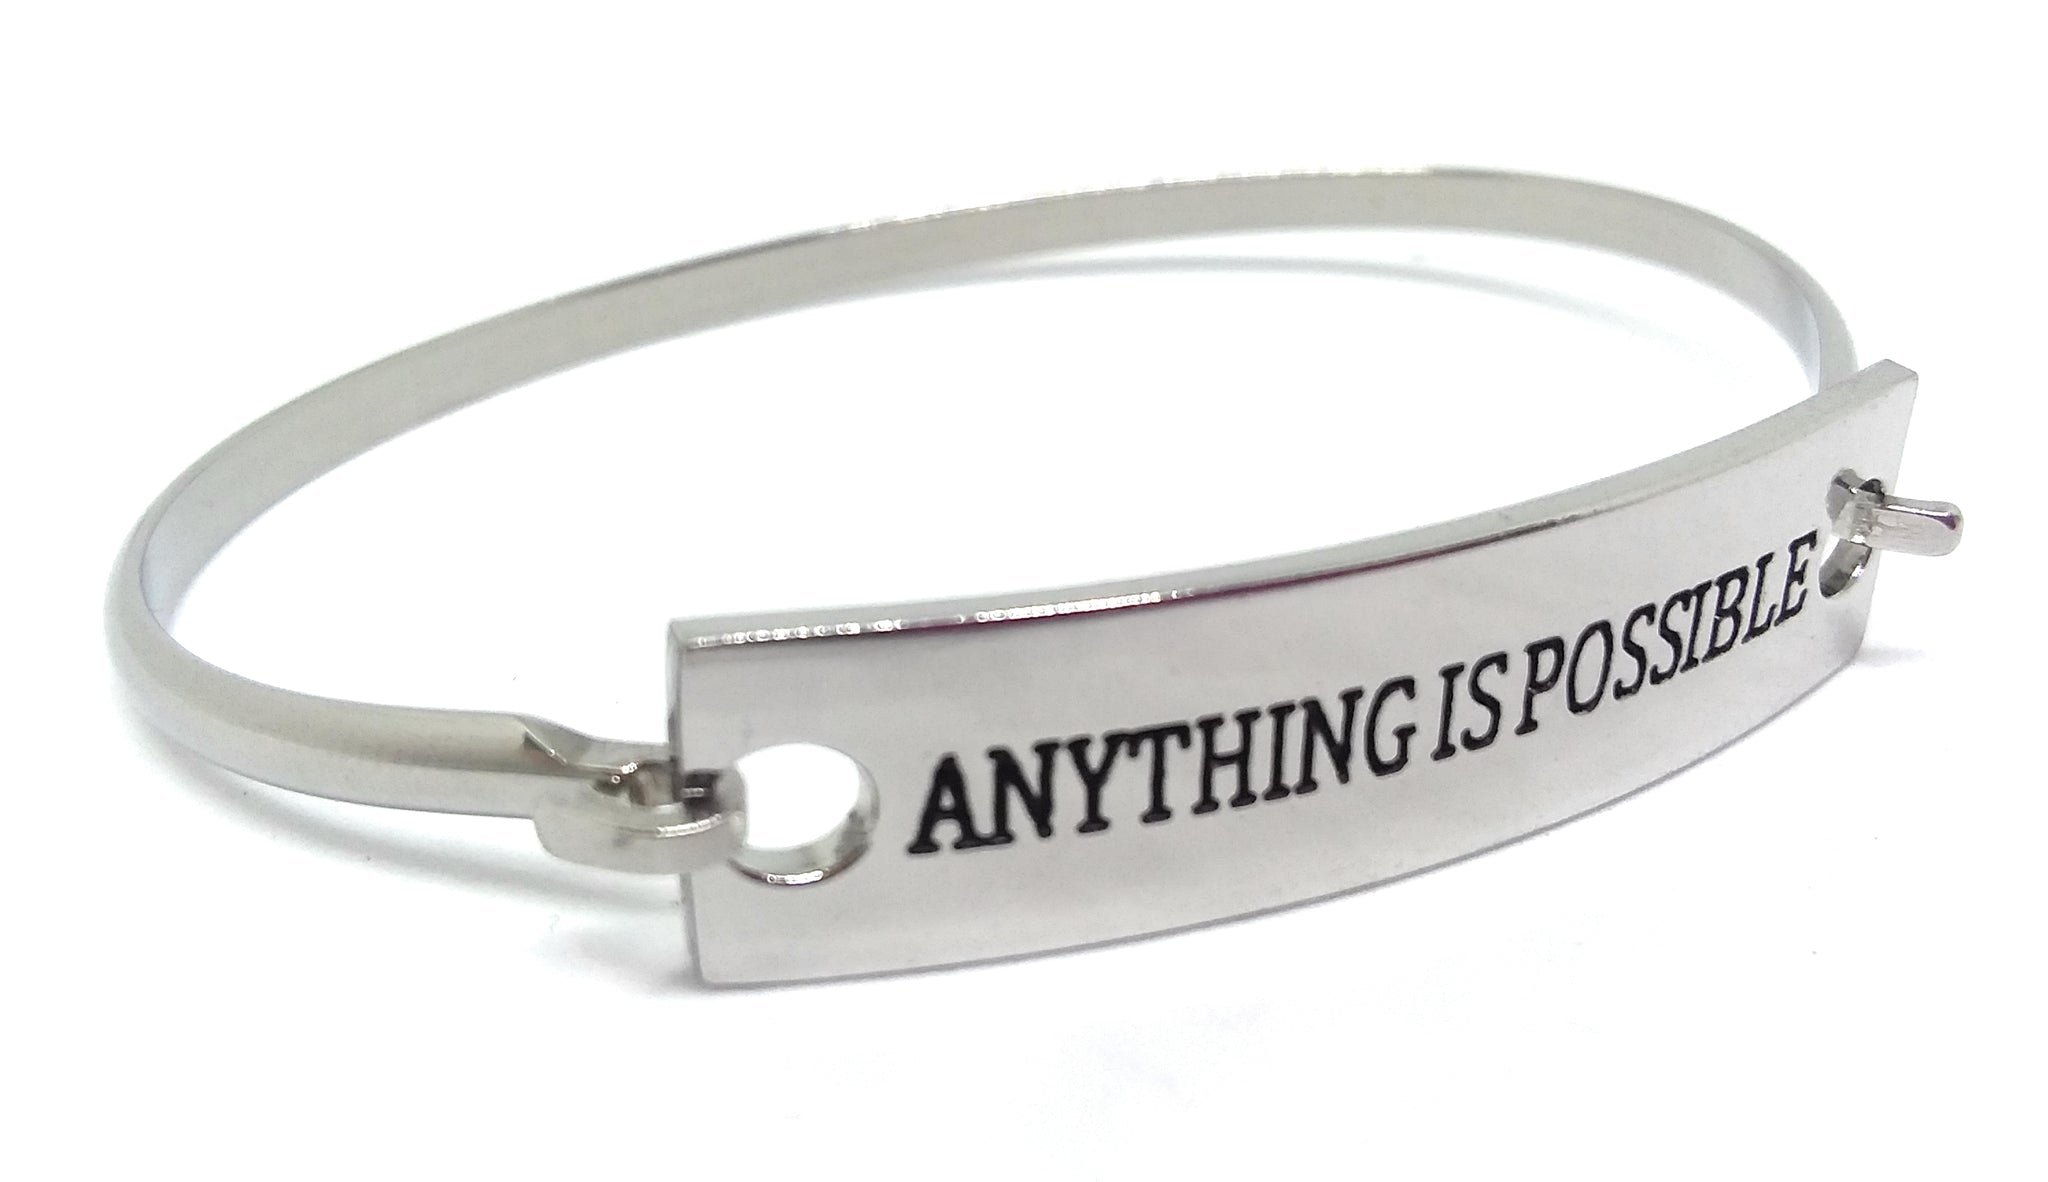 Stainless Steel Inspirational Message Connector Bangle Bracelet - ANYTHING IS POSSIBLE